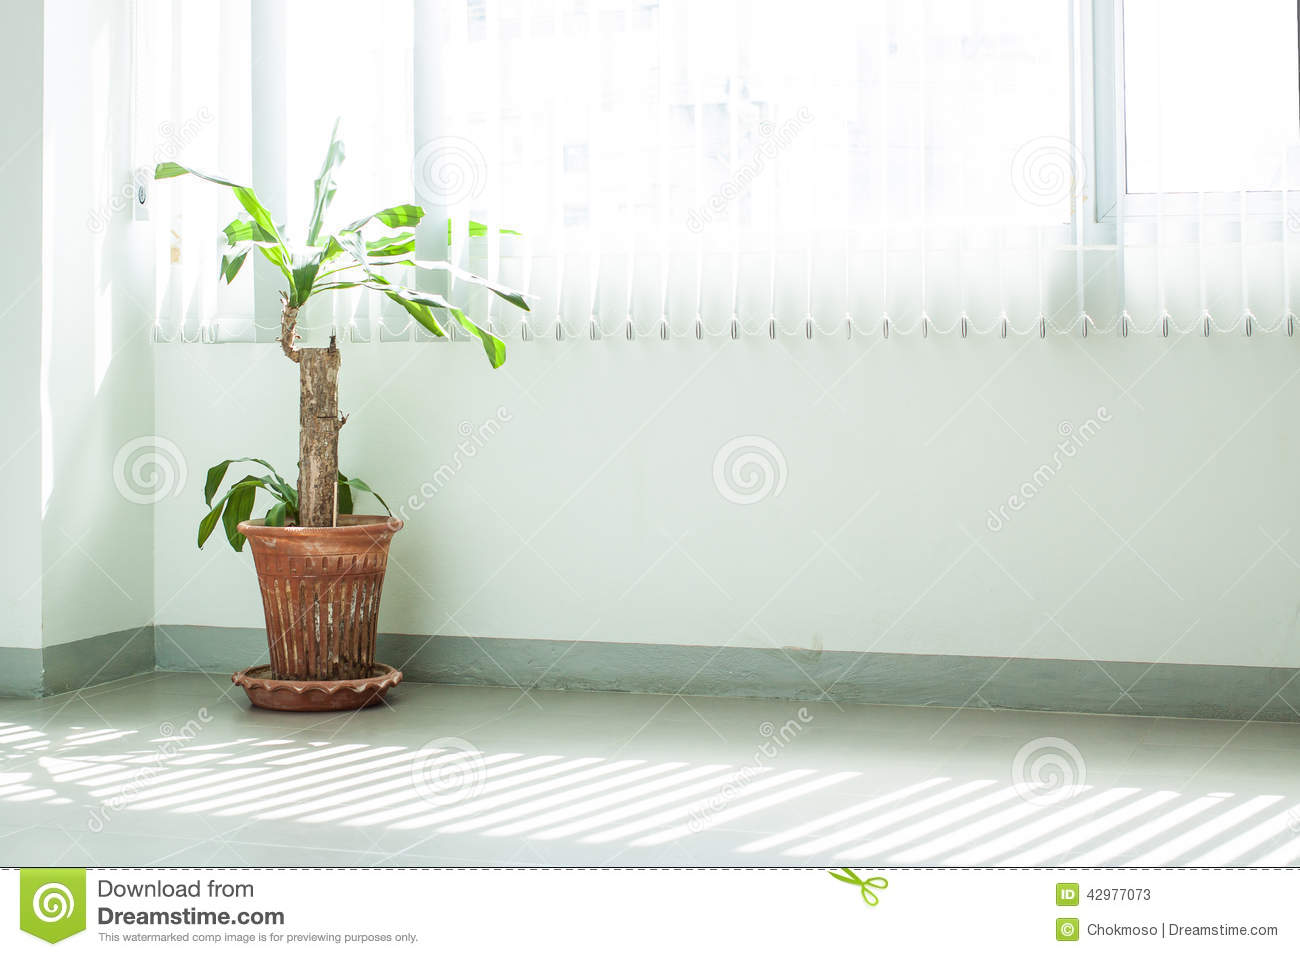 Potted ornamental